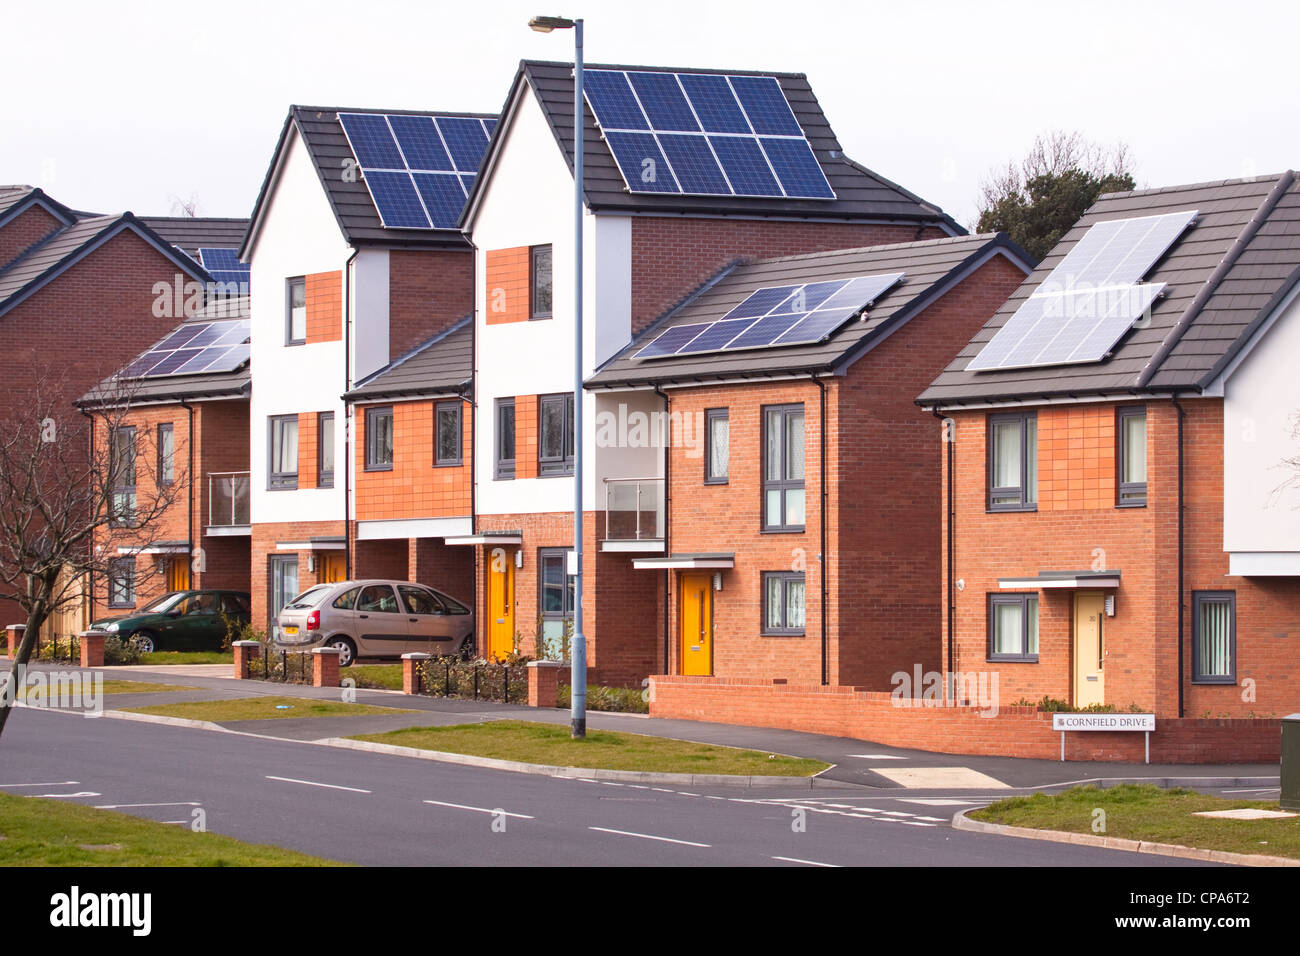 New housing with Photovoltaic solar panels systems on roof, Birmingham, England, UK - Stock Image